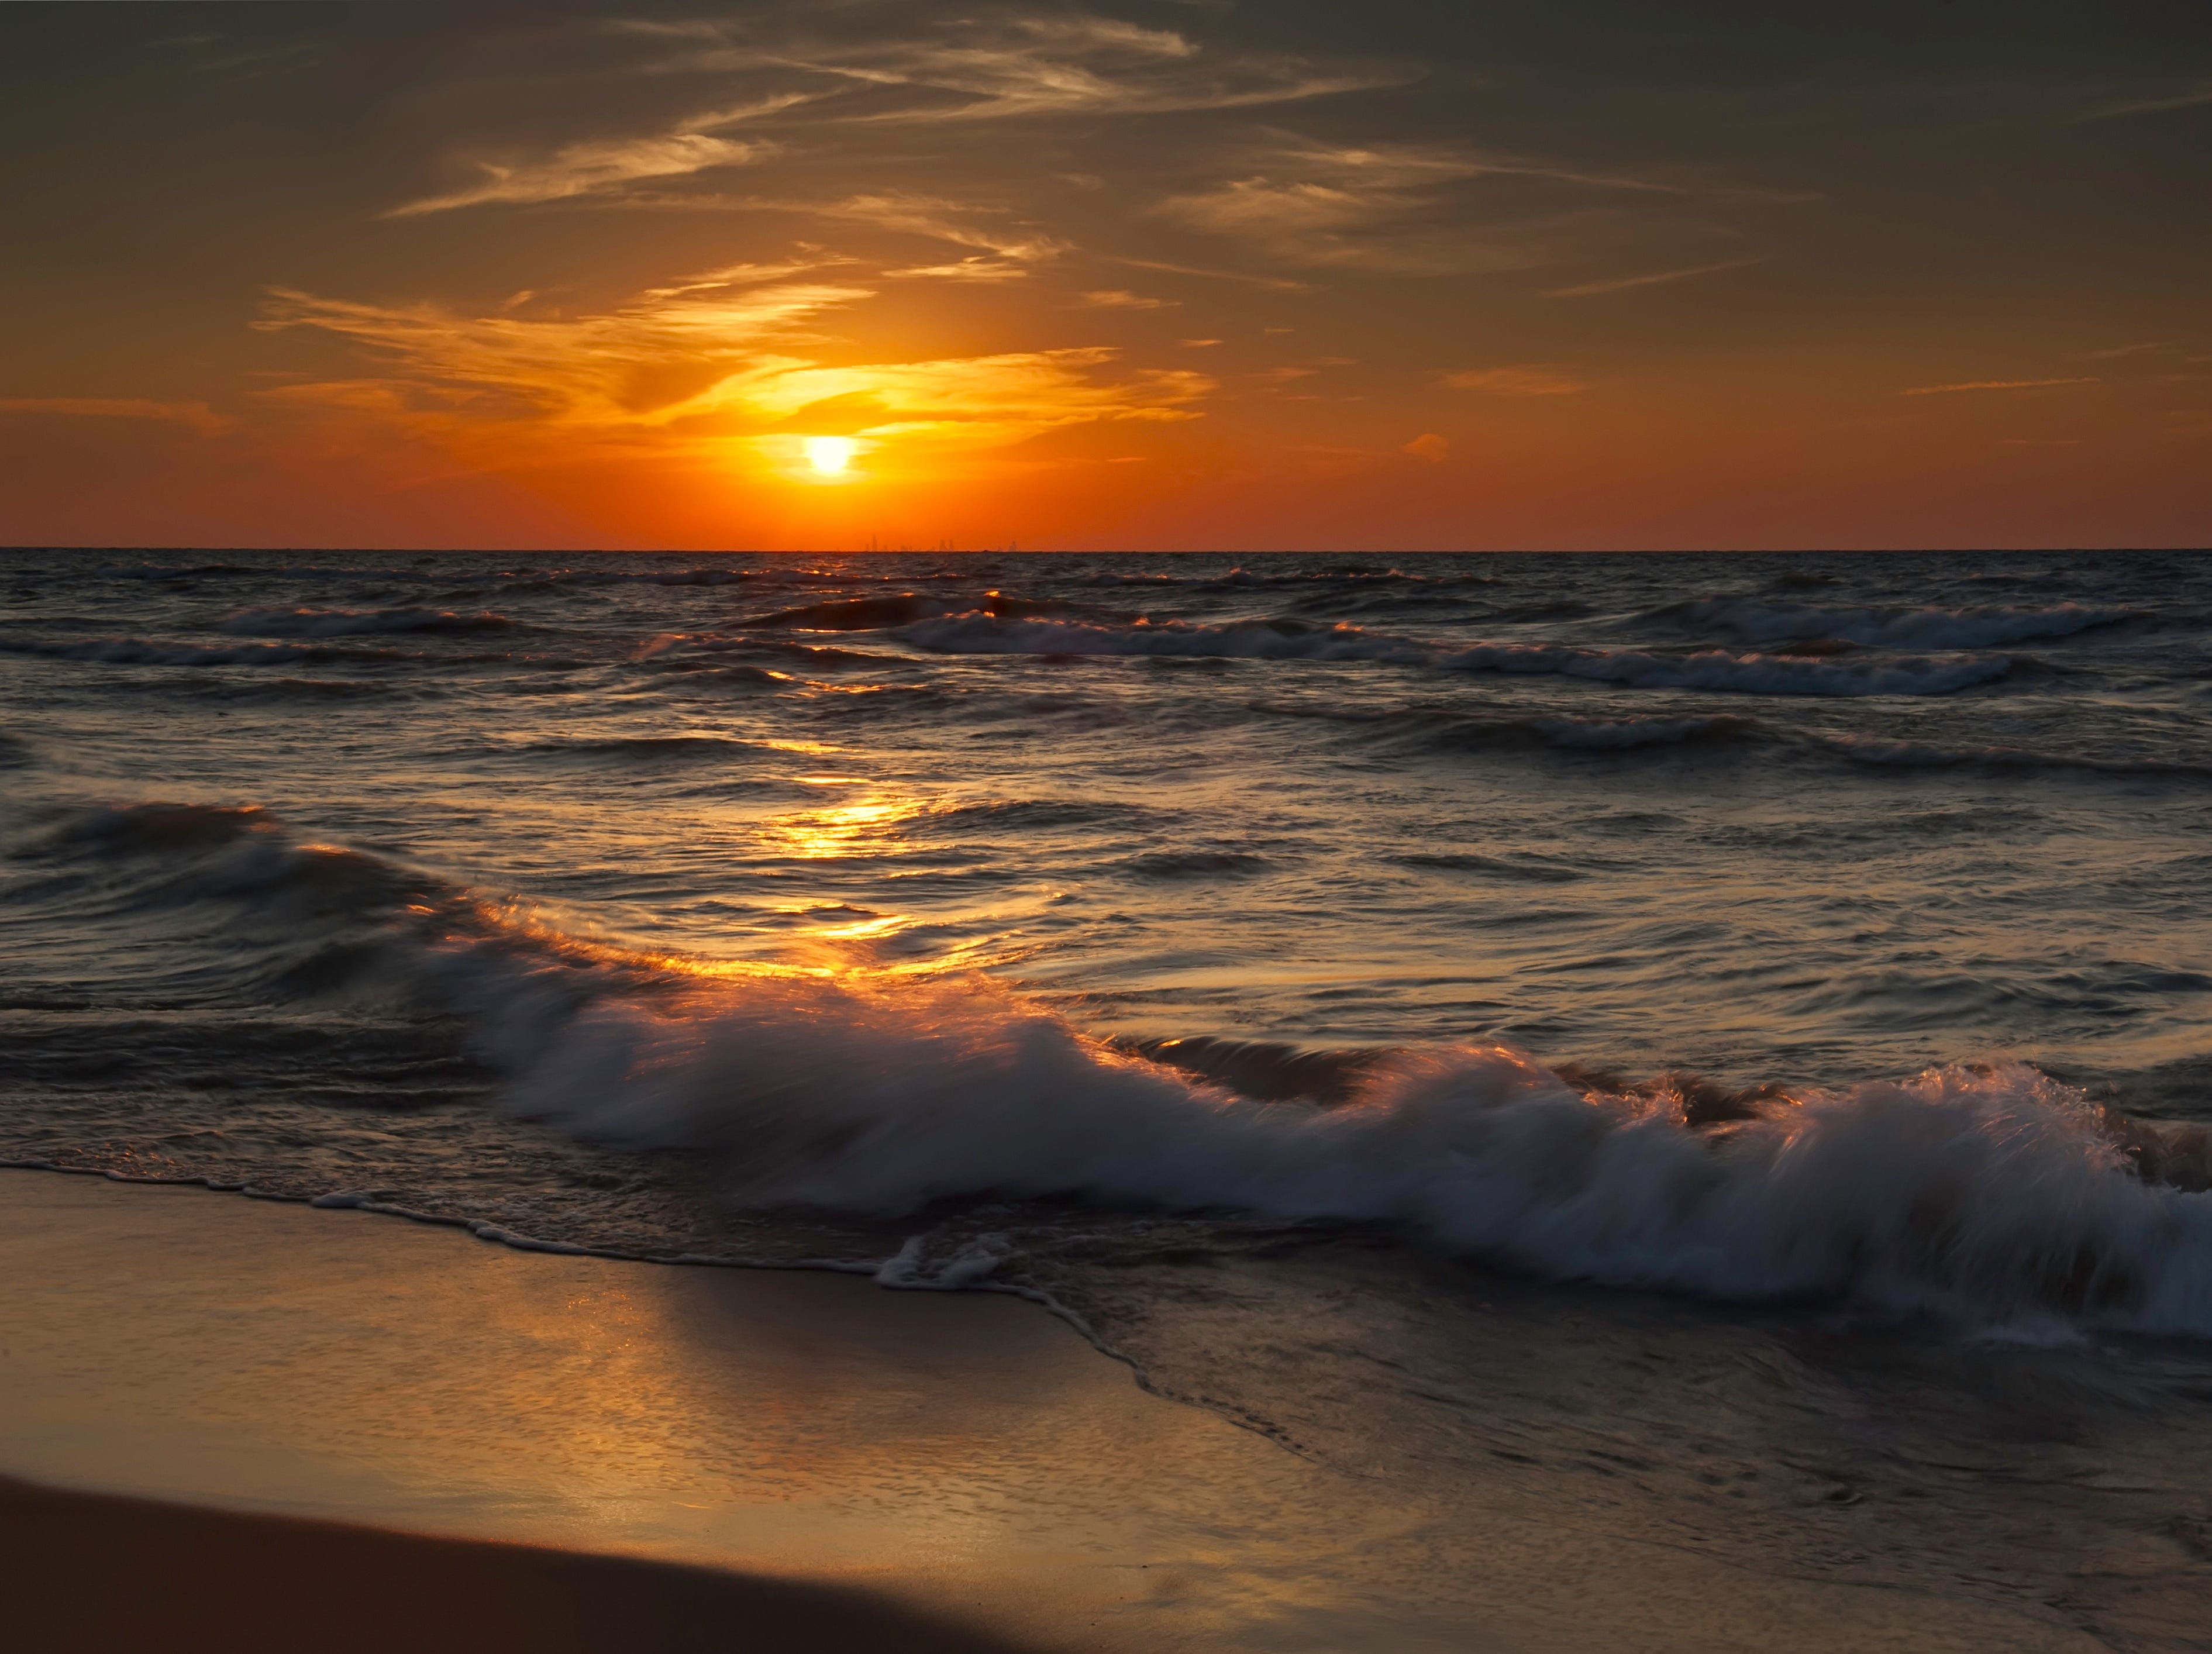 Sunset is the highlight at the Indiana Dunes National Lakeshore, which earned federal protection from an act of Congress in 1966. President Trump recently elevated its status to become the Indiana Dunes National Park.